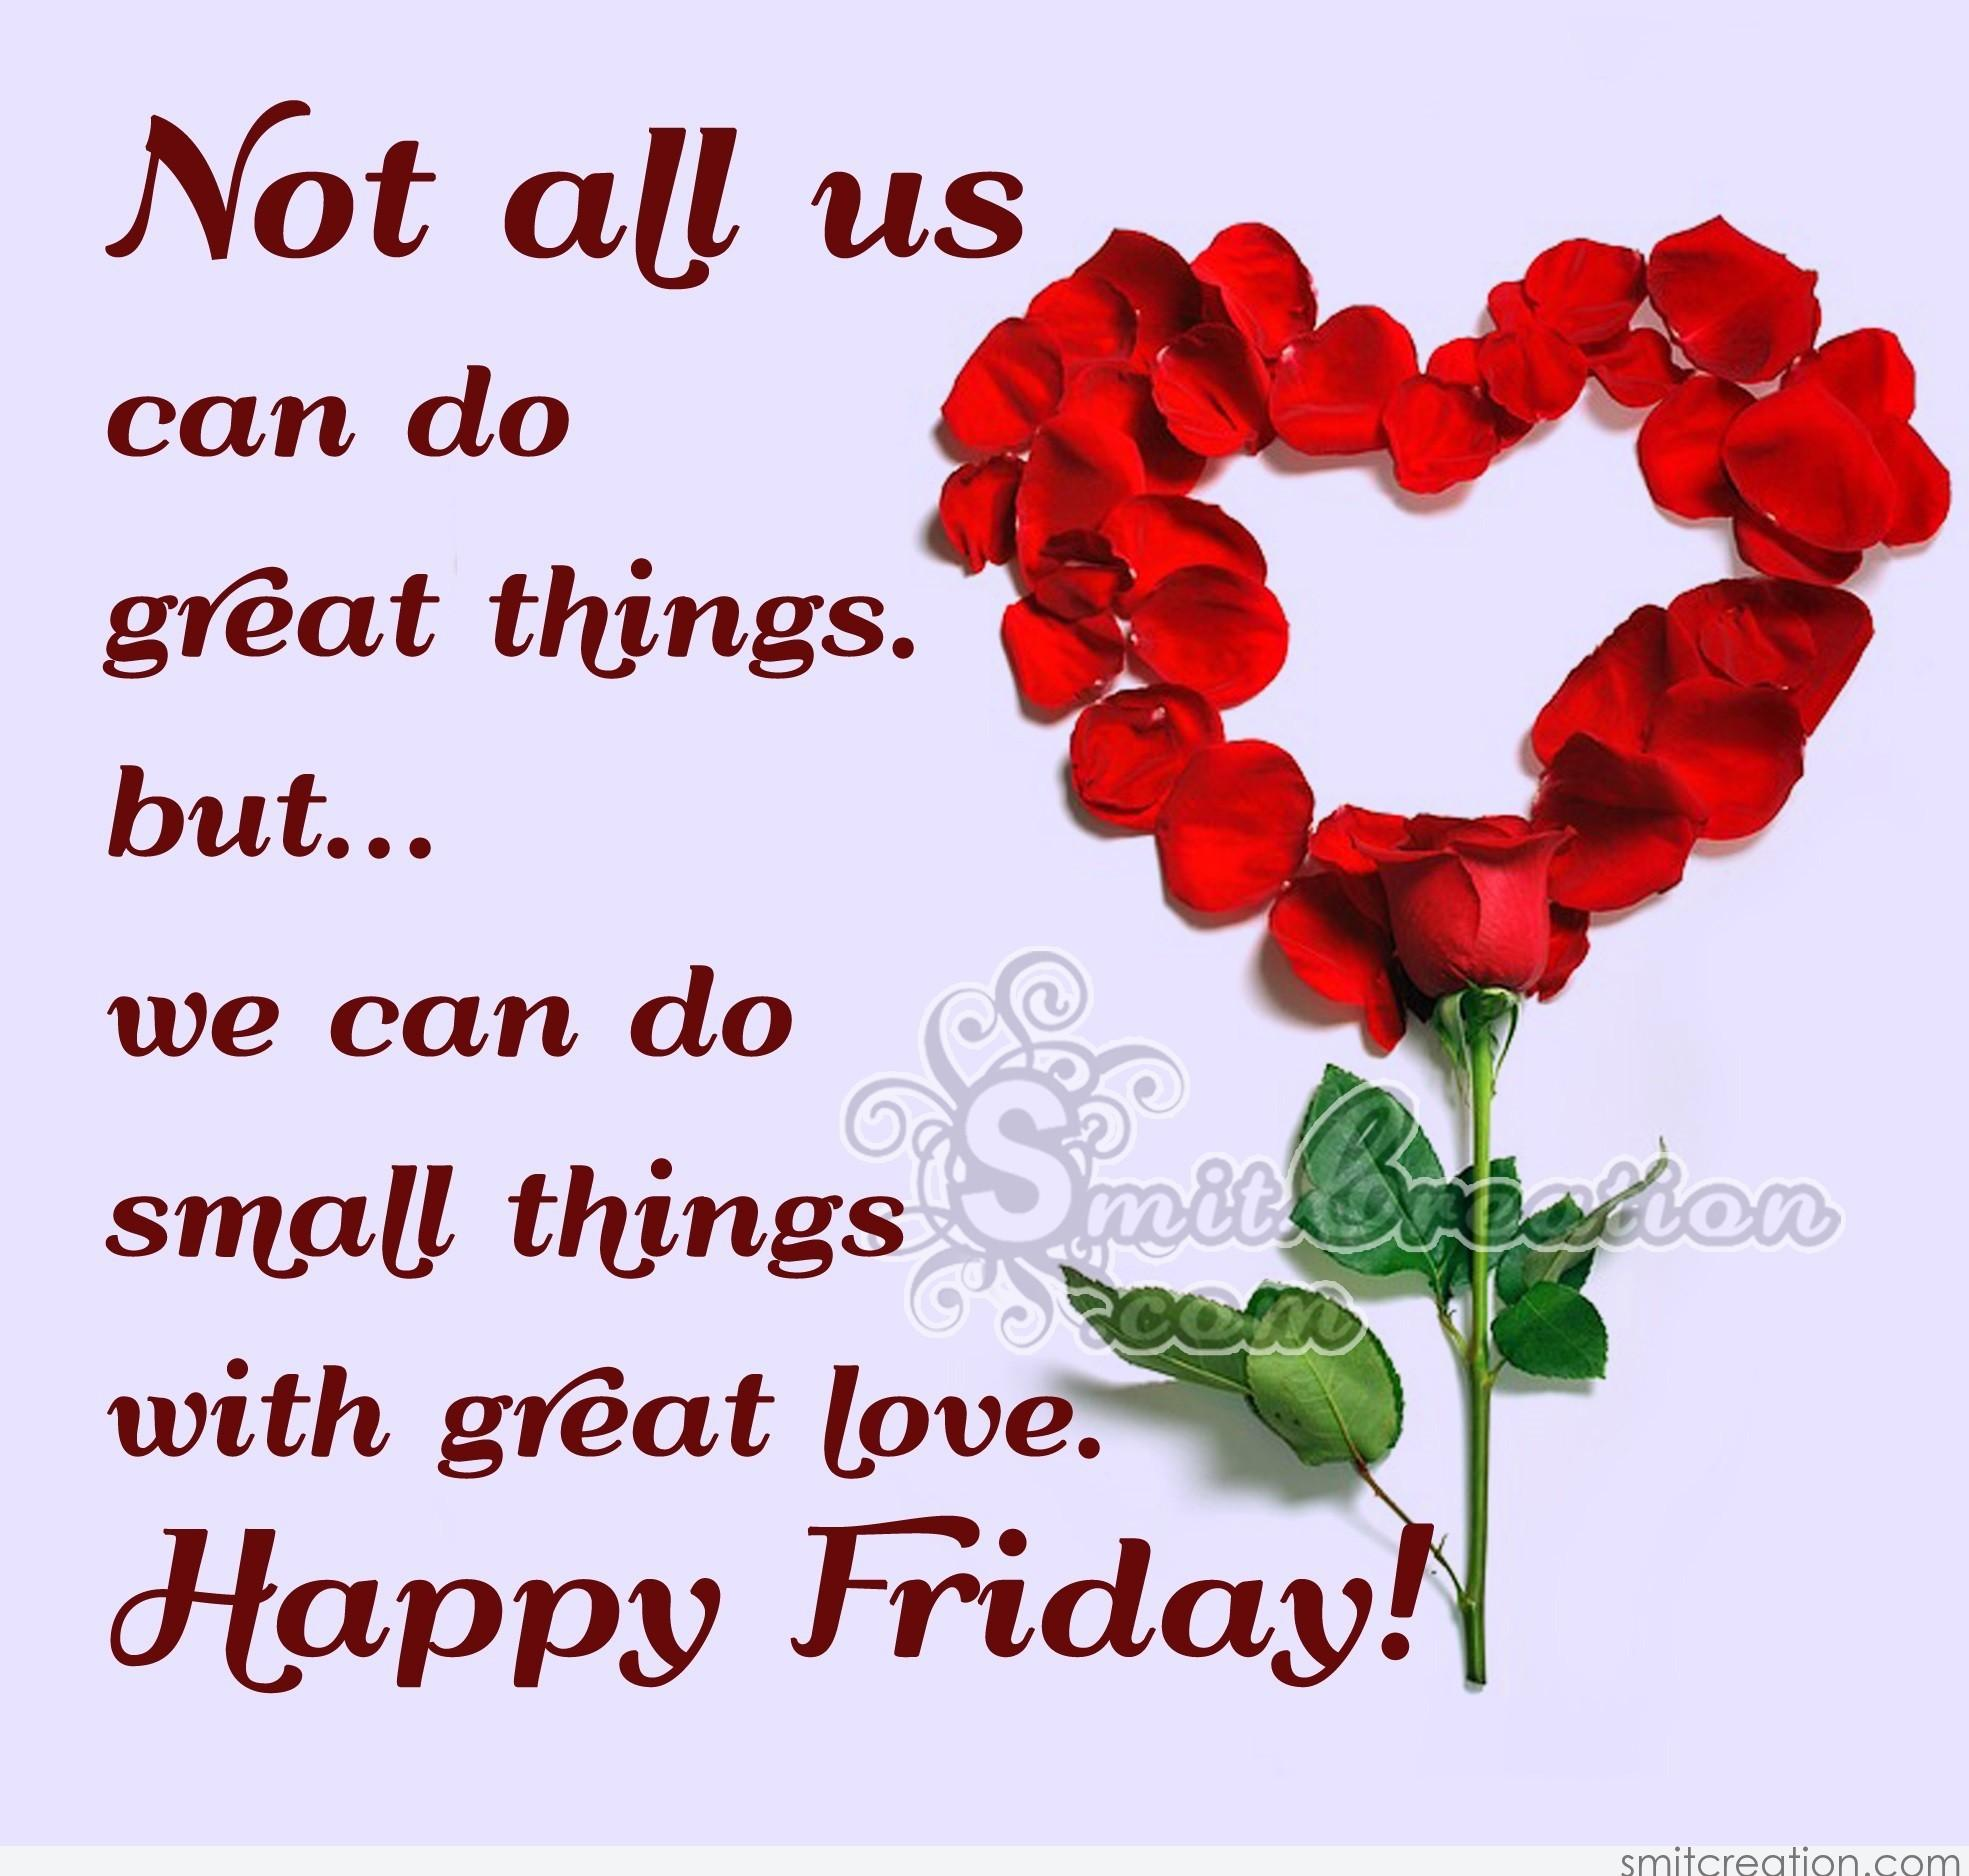 Friday pictures and graphics smitcreation page 3 not all us can do great things but we can do small things with great love happy friday m4hsunfo